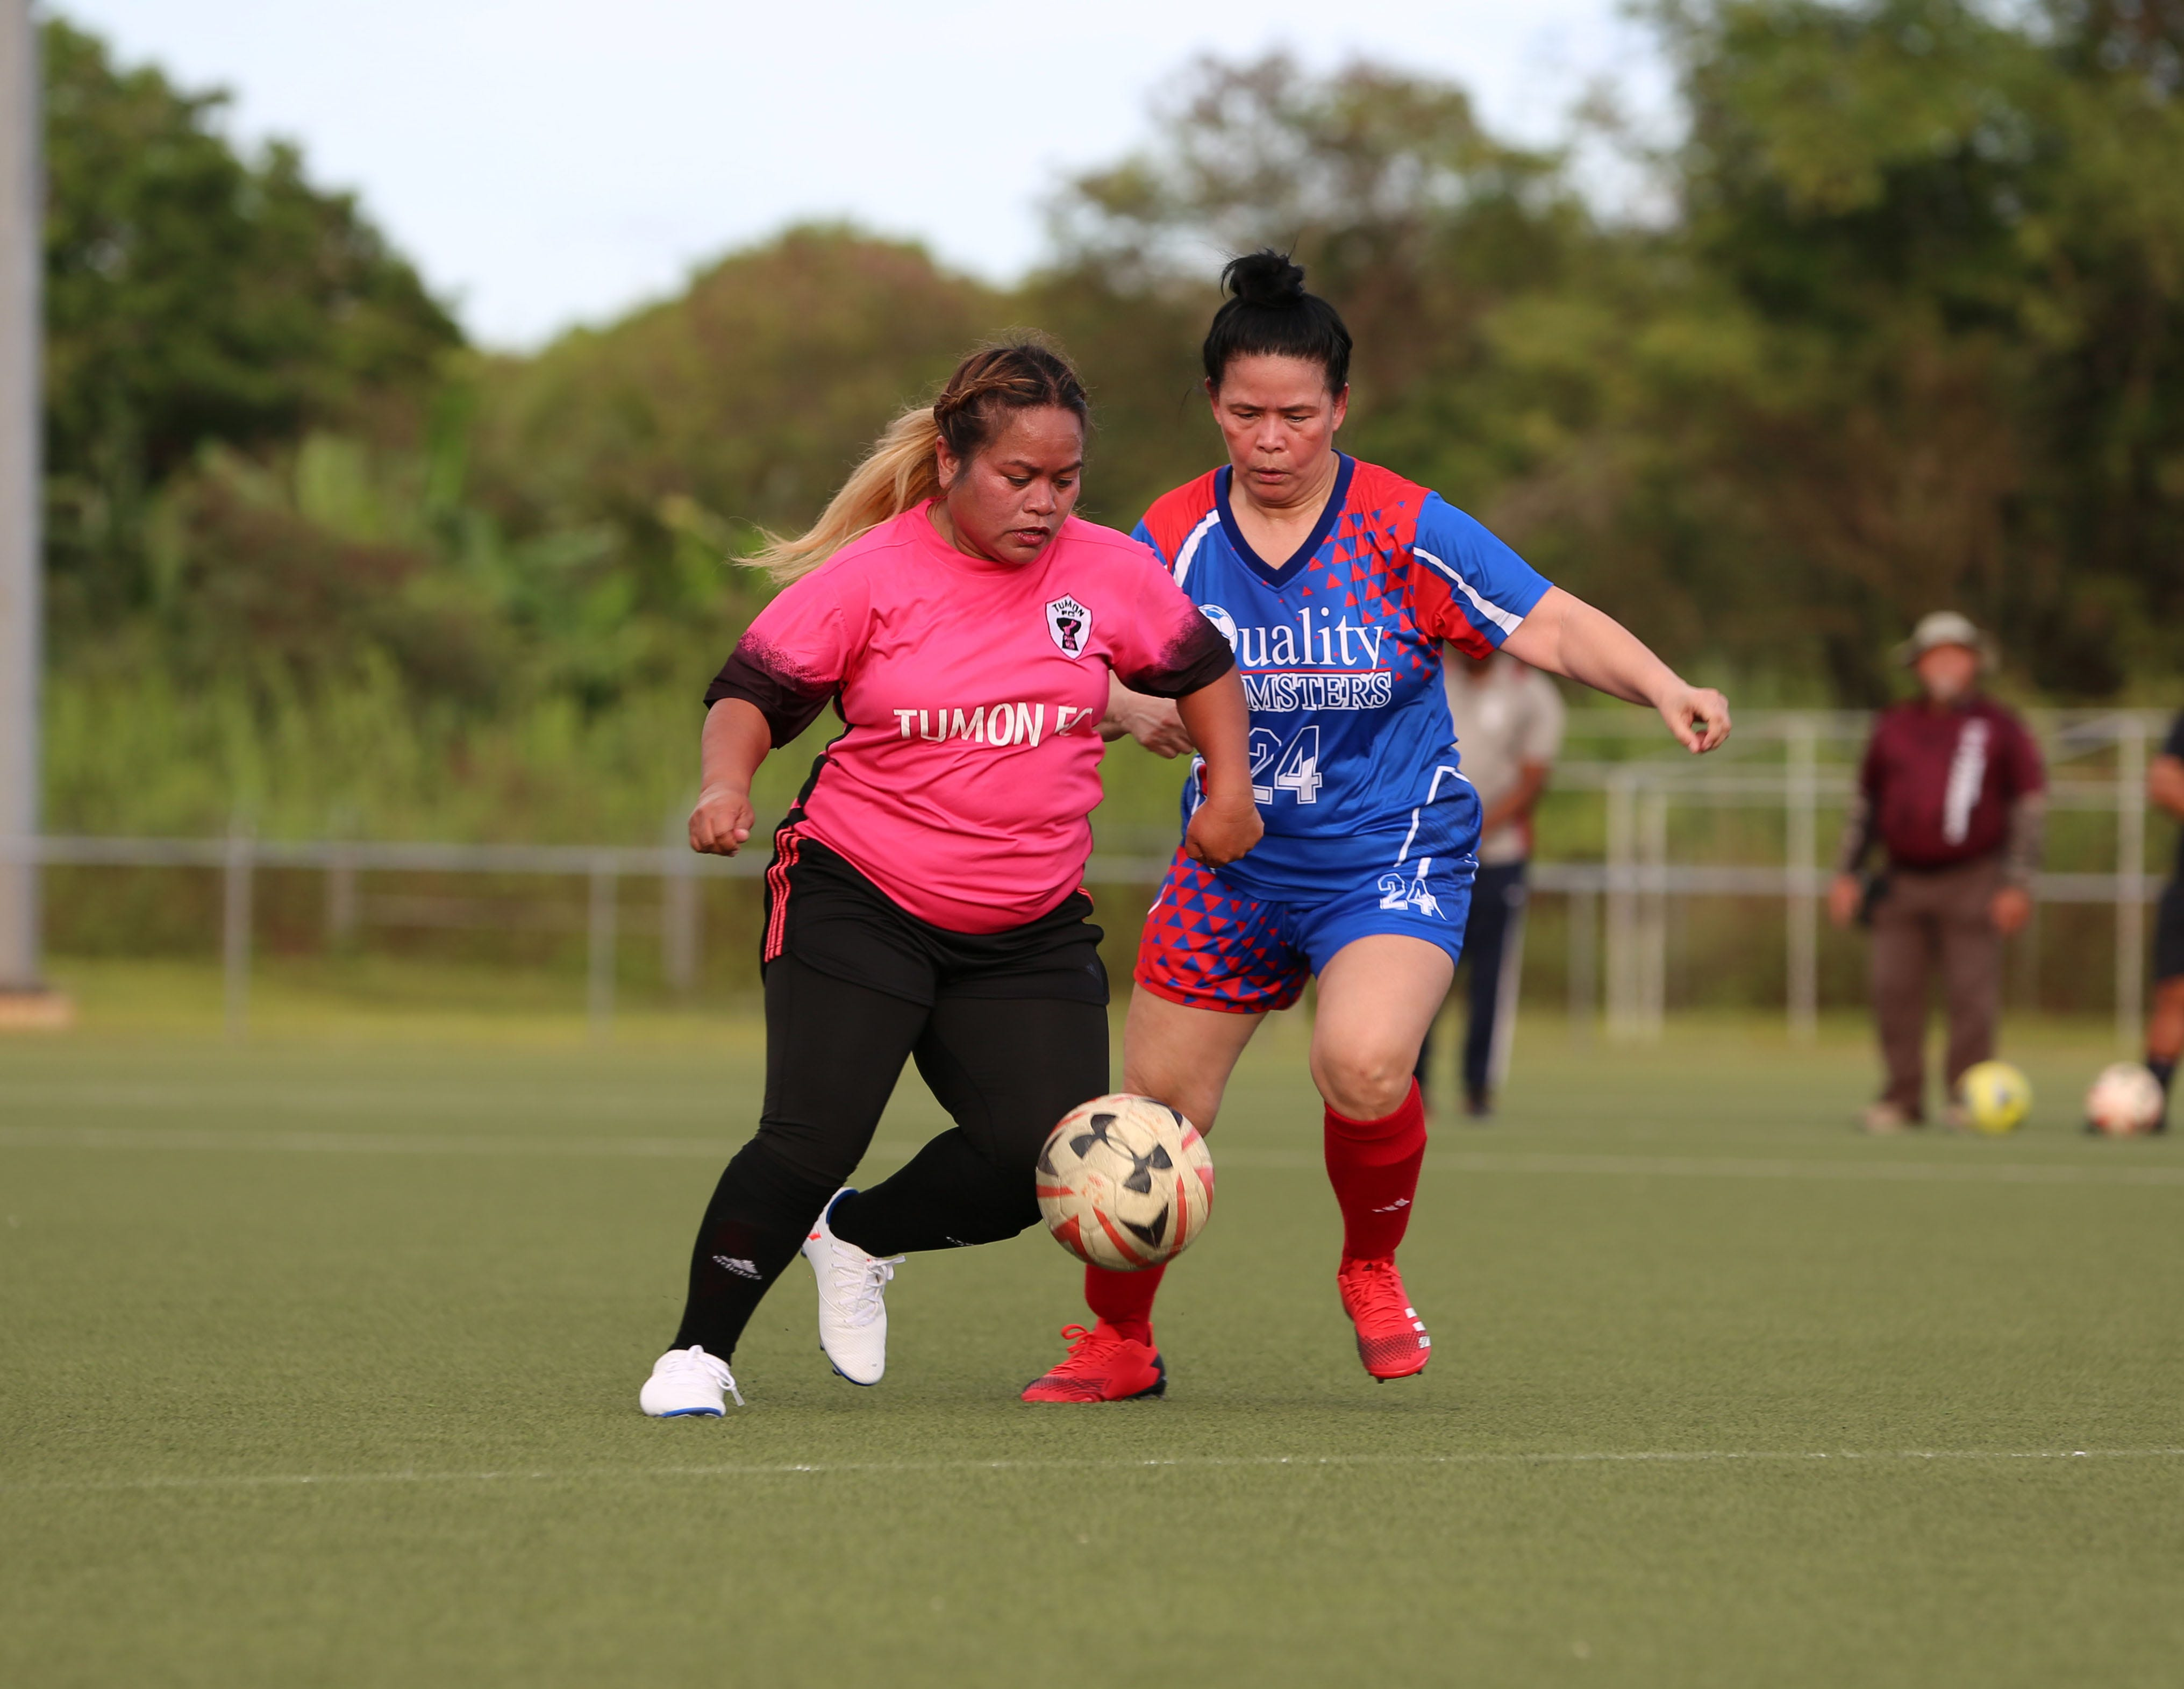 Tumon FC's Resa Saddo attempts to get the ball past Quality Distributors Momsters defender Dee Shippey in an opening day match of the Guam Football Association Women's Recreational League Sunday at the Guam Football Association National Training Center.